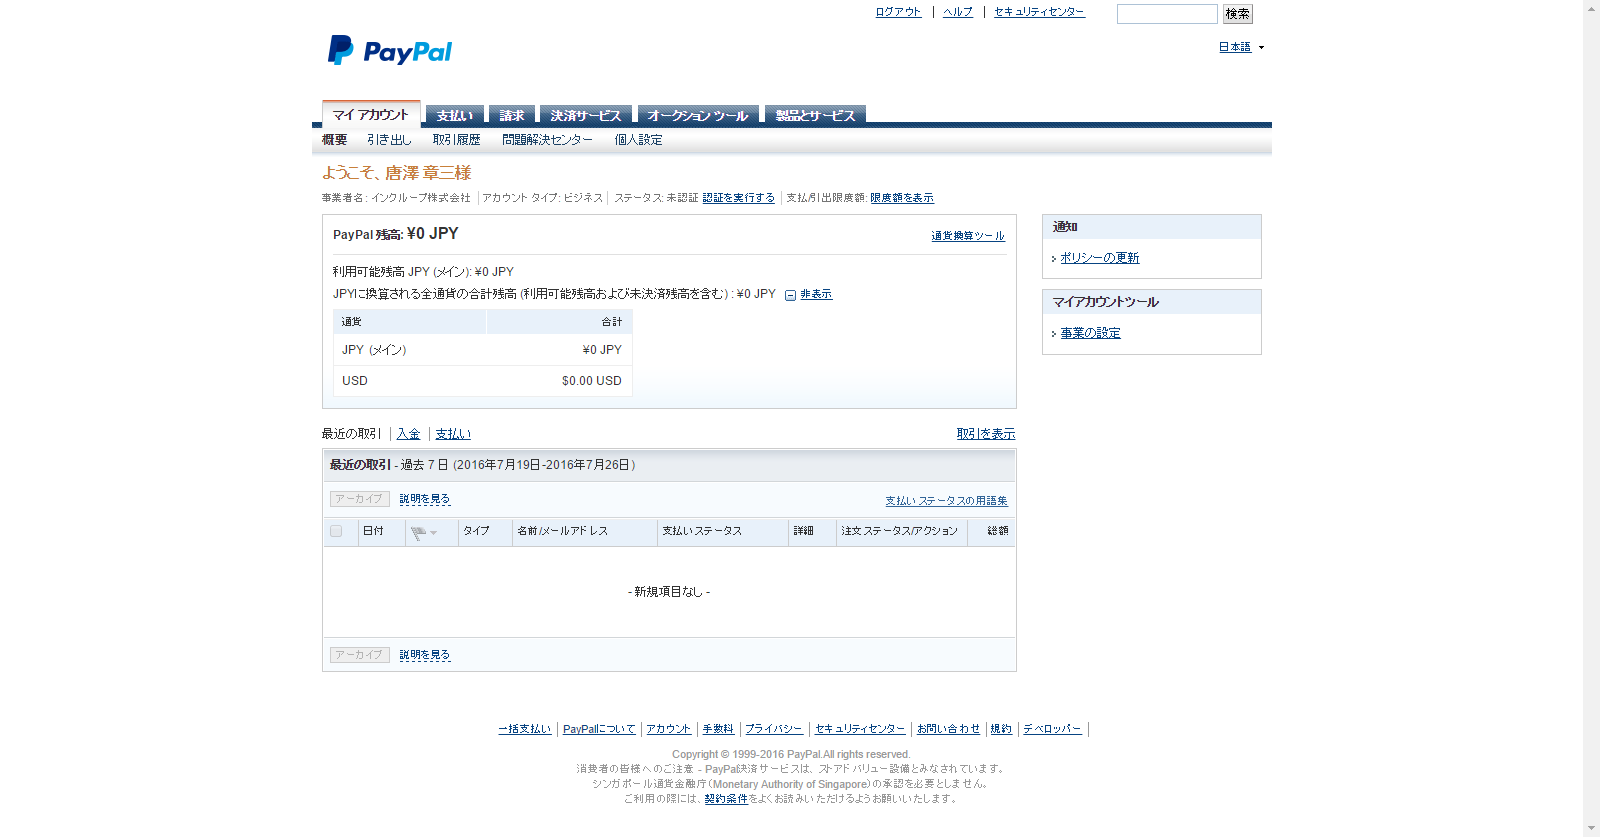 PayPal_old_01